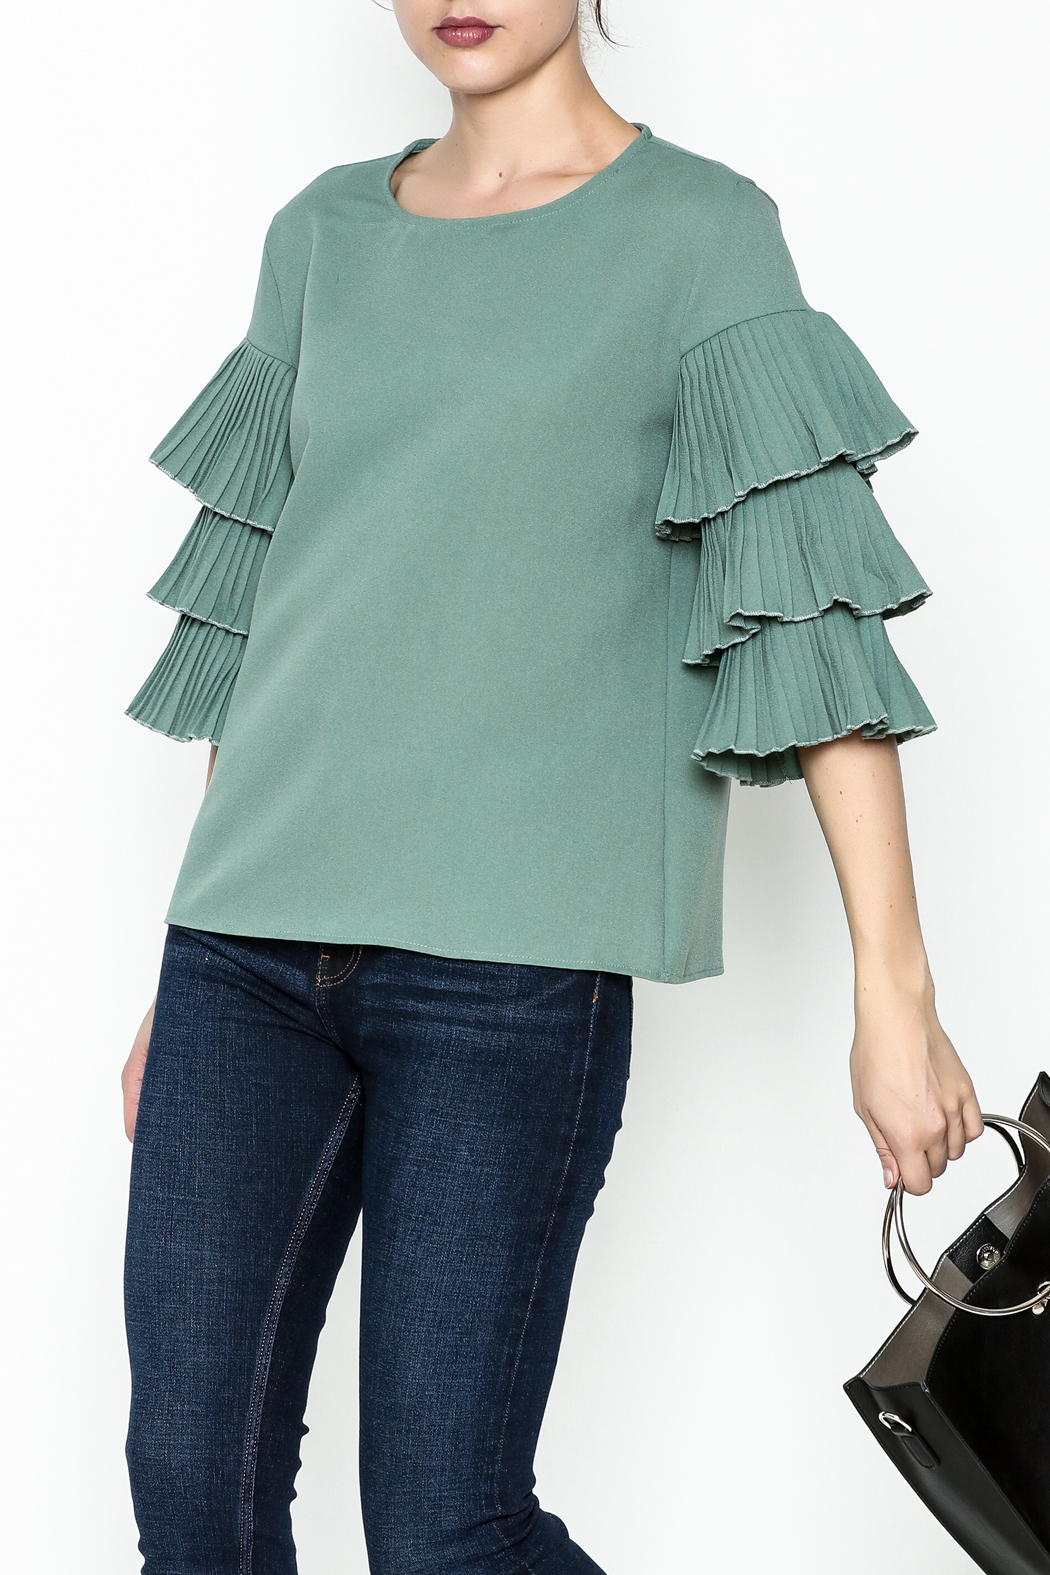 on12th Ruffle Sleeve Blouse - Main Image